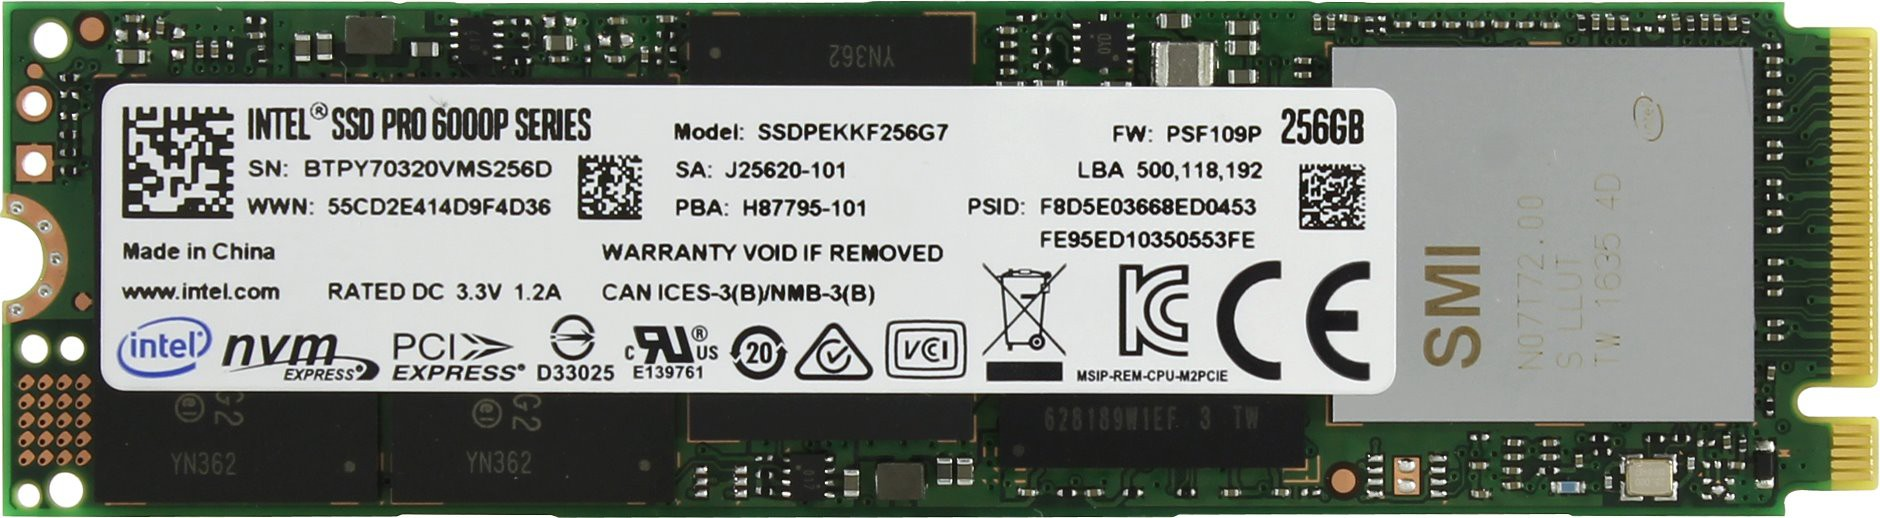 Жесткий диск SSD 256Gb Intel Pro 6000p Series SSDPEKKF256G7X1 (PCI-Express 3.0, M.2, 1570/540Мb/s)